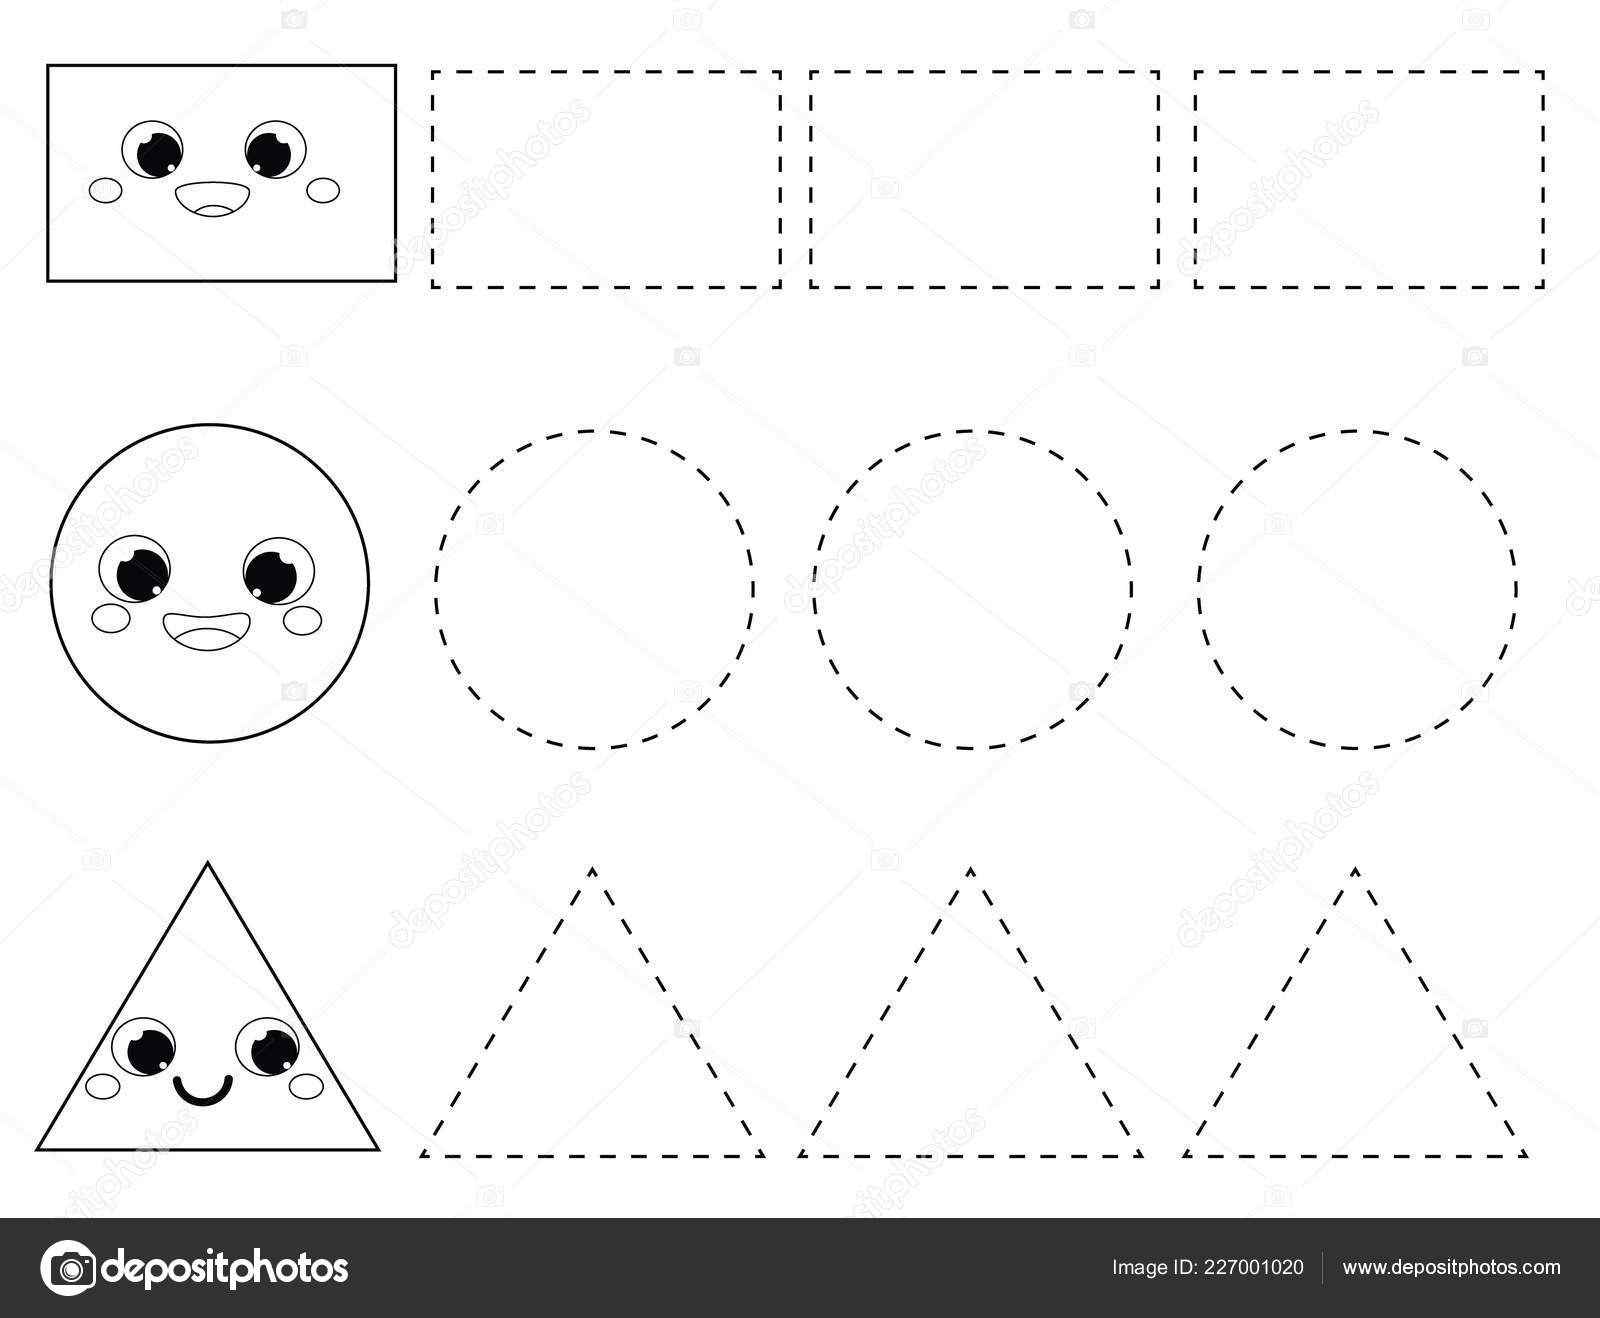 Handwriting Practice Sheet. Educational Children Game, Printable Worksheet  For Kids. Tracing Lines. Learning Geometric Shapes For Toddlers. Rectangle,